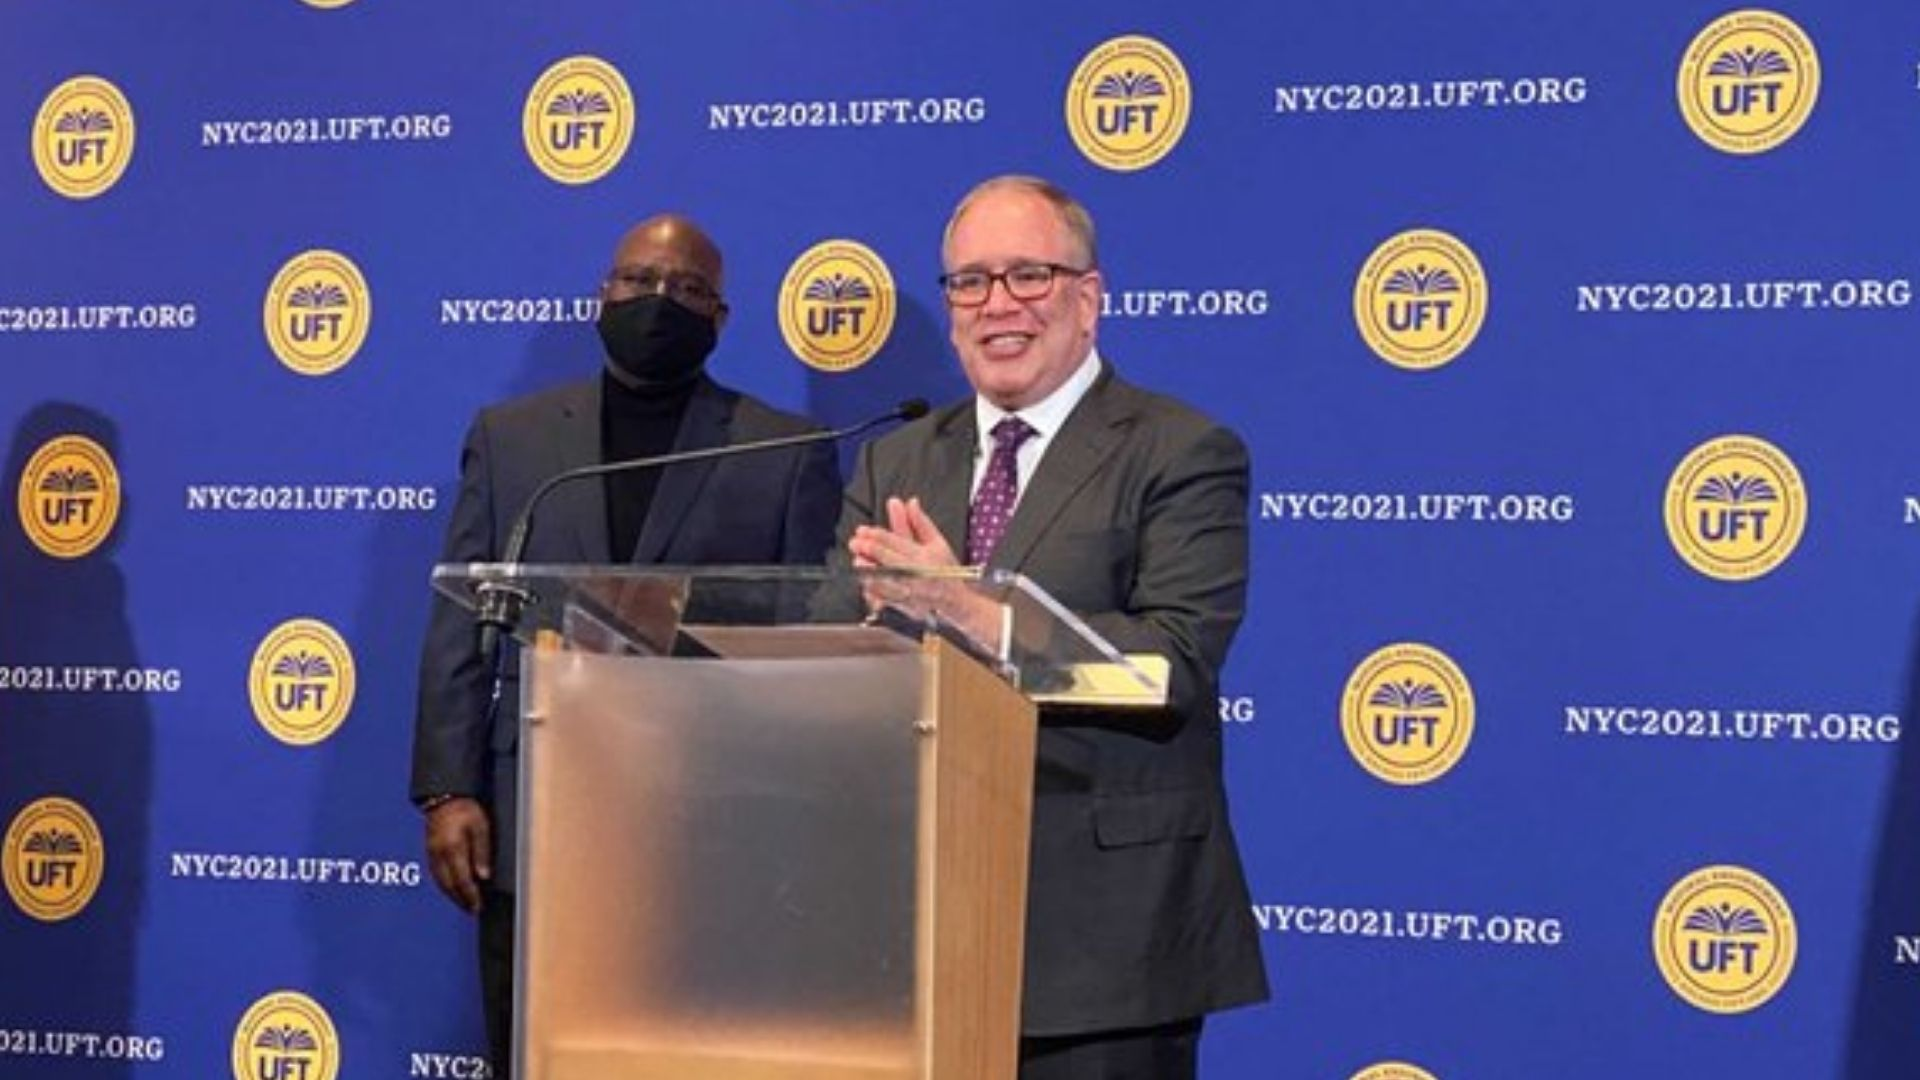 New York's United Federation of Teachers, the nation's largest teachers union, has endorsed Scott Stringer for the mayor of New York City.